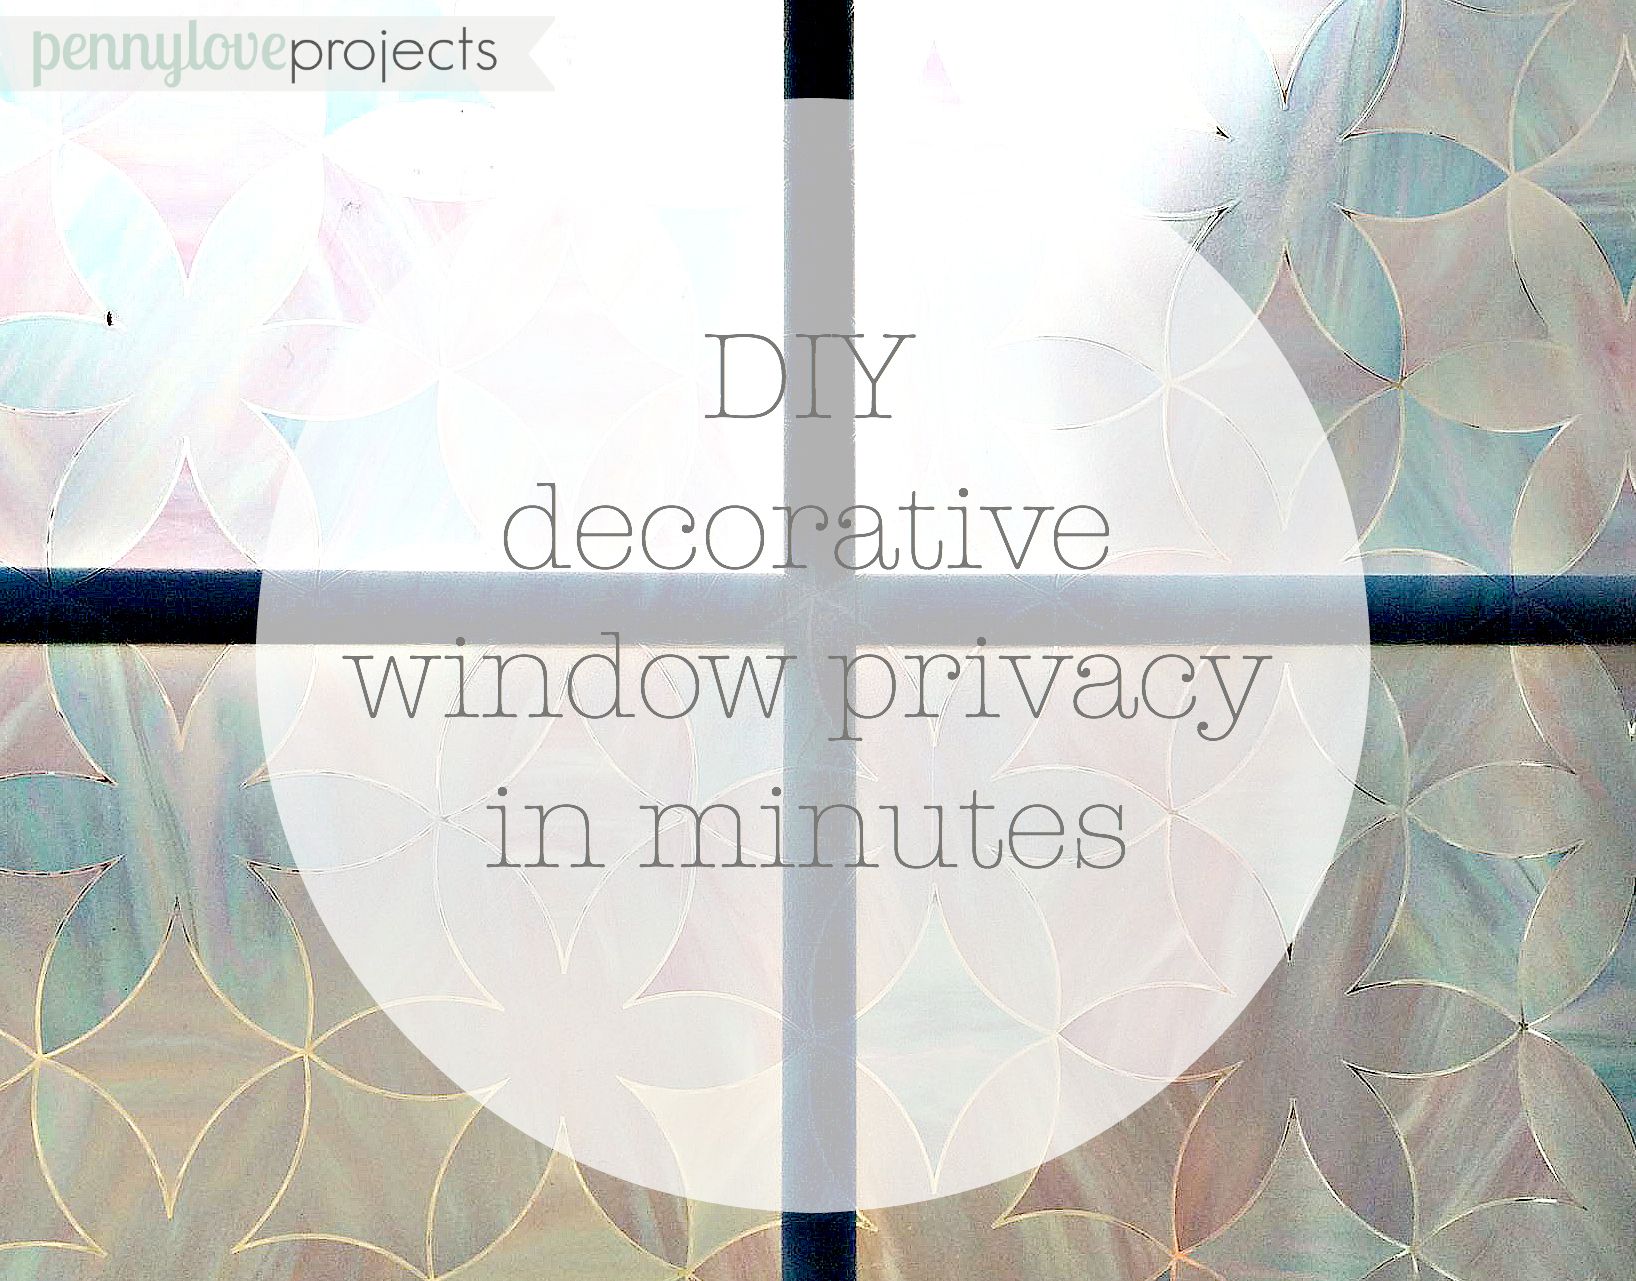 http://www.pennyloveprojects.com/wp-content/uploads/2015/03/window-privacy-pinterest-photo.jpg